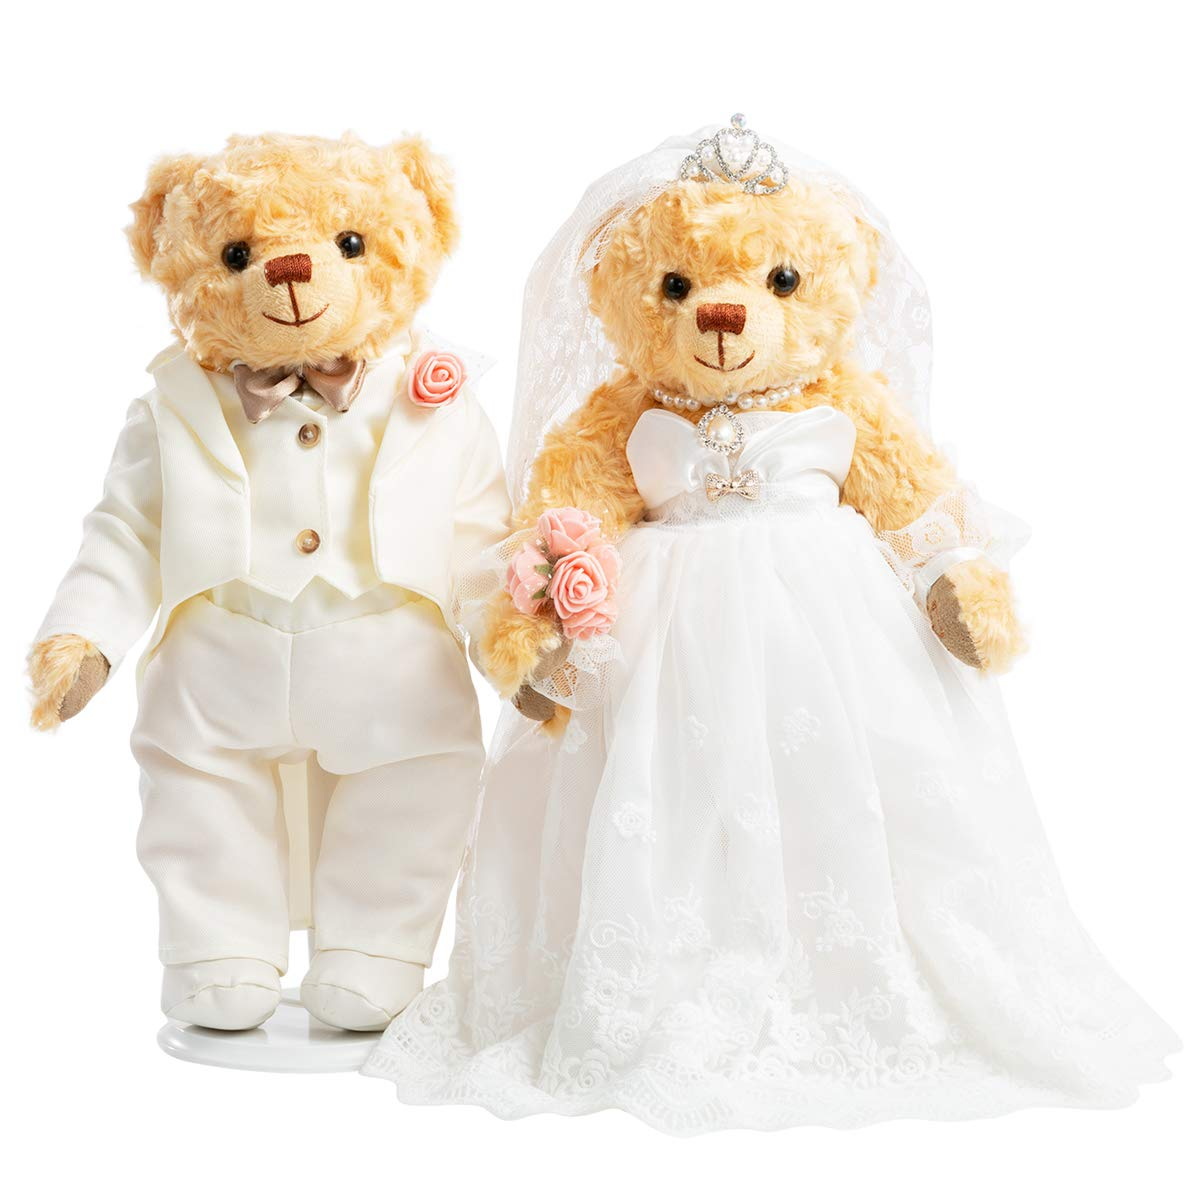 HollyHOME Stuffed Animals Wedding Teddy Bears Plush Bride and Groom Bears Toys Dolls for Wedding Decoration Valentine Birthday Party Gift, Set of 2, White,14 Inch by HollyHOME